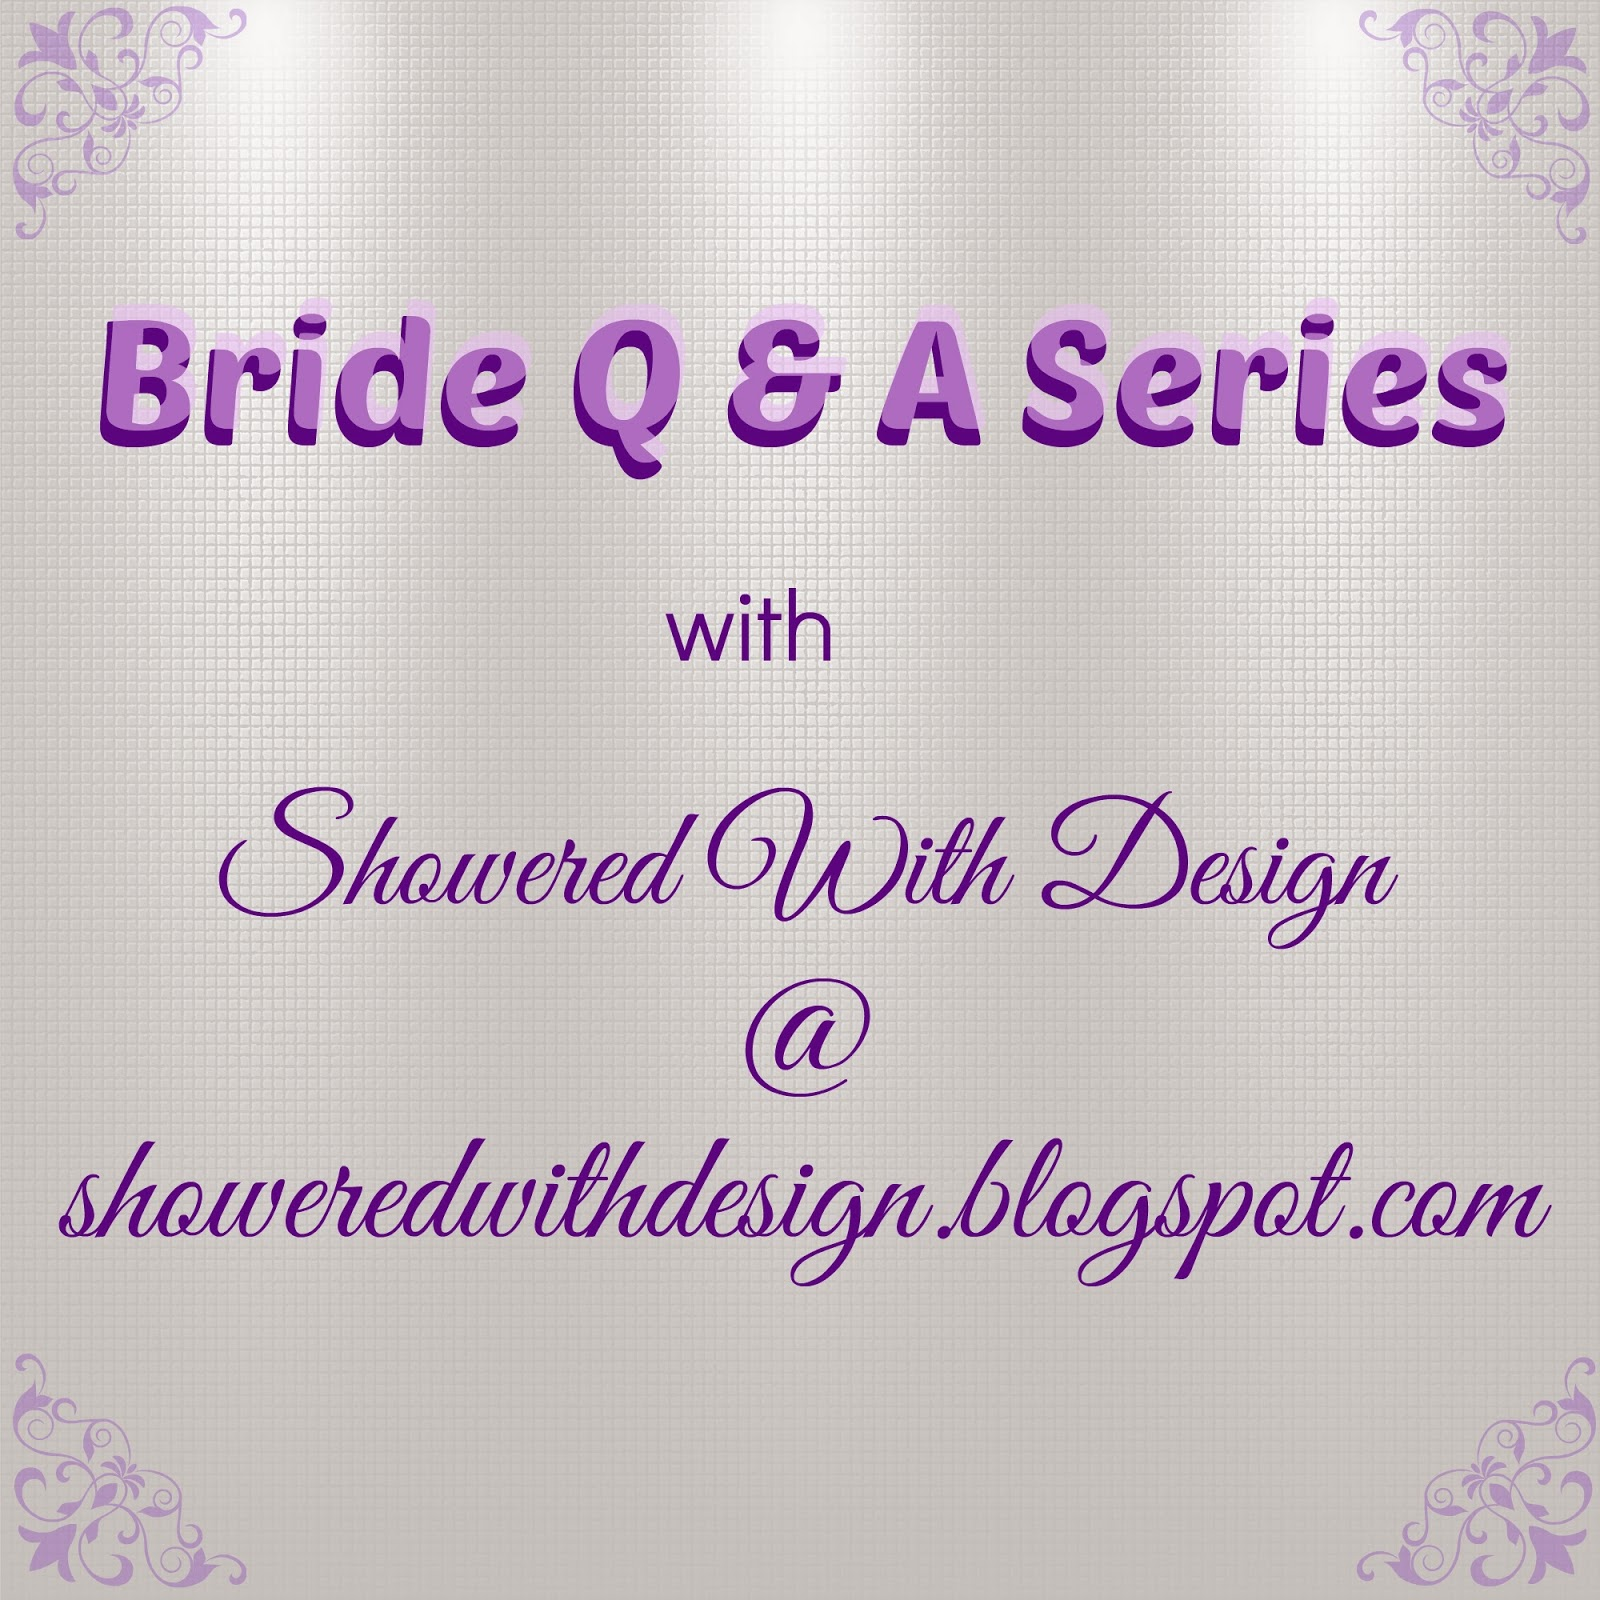 http://www.showeredwithdesign.blogspot.com/search/label/bride